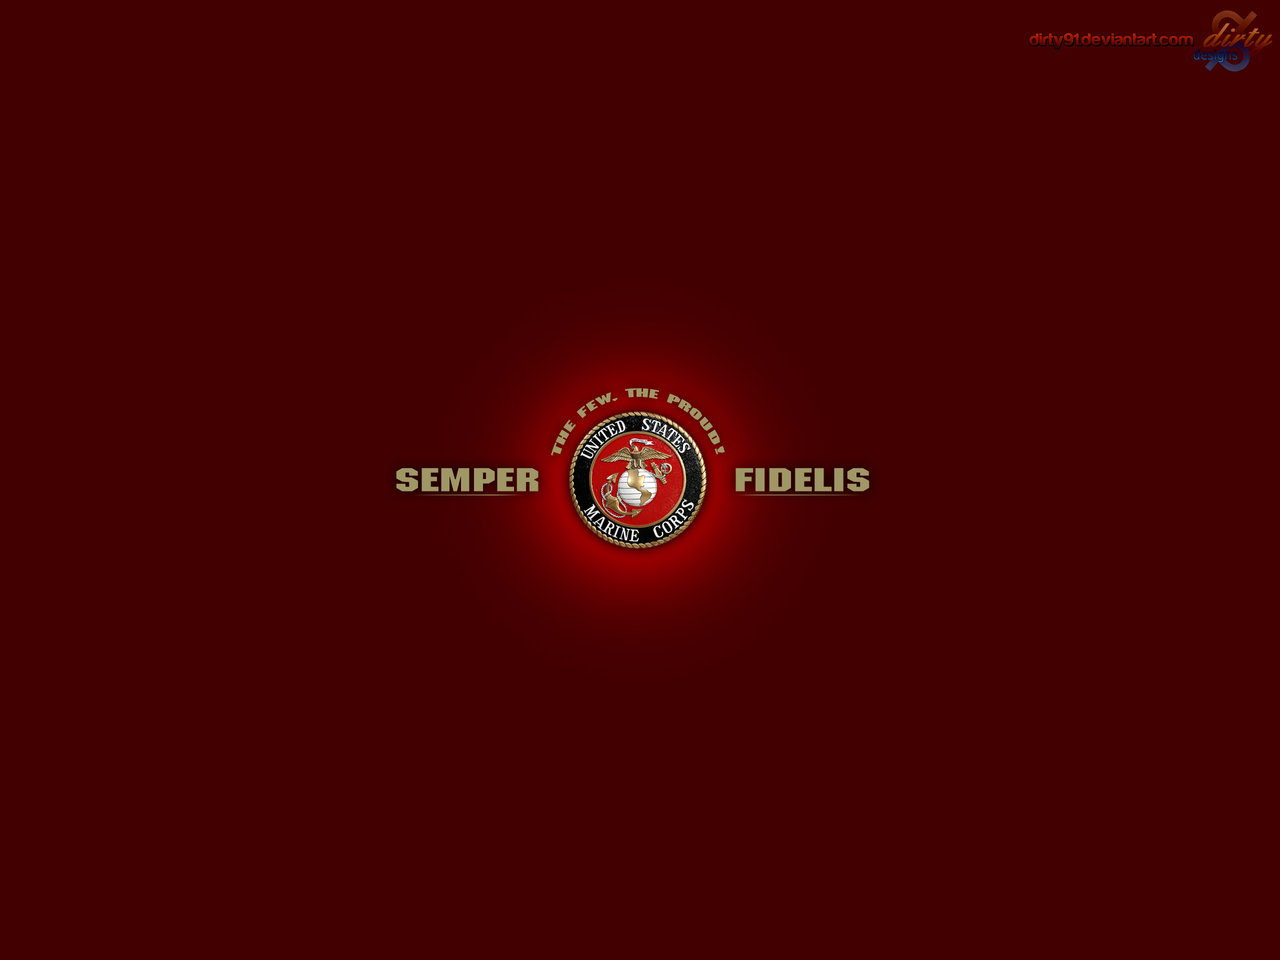 usmc wallpaper now in hd by dirty91 customization wallpaper other 2008 1280x960